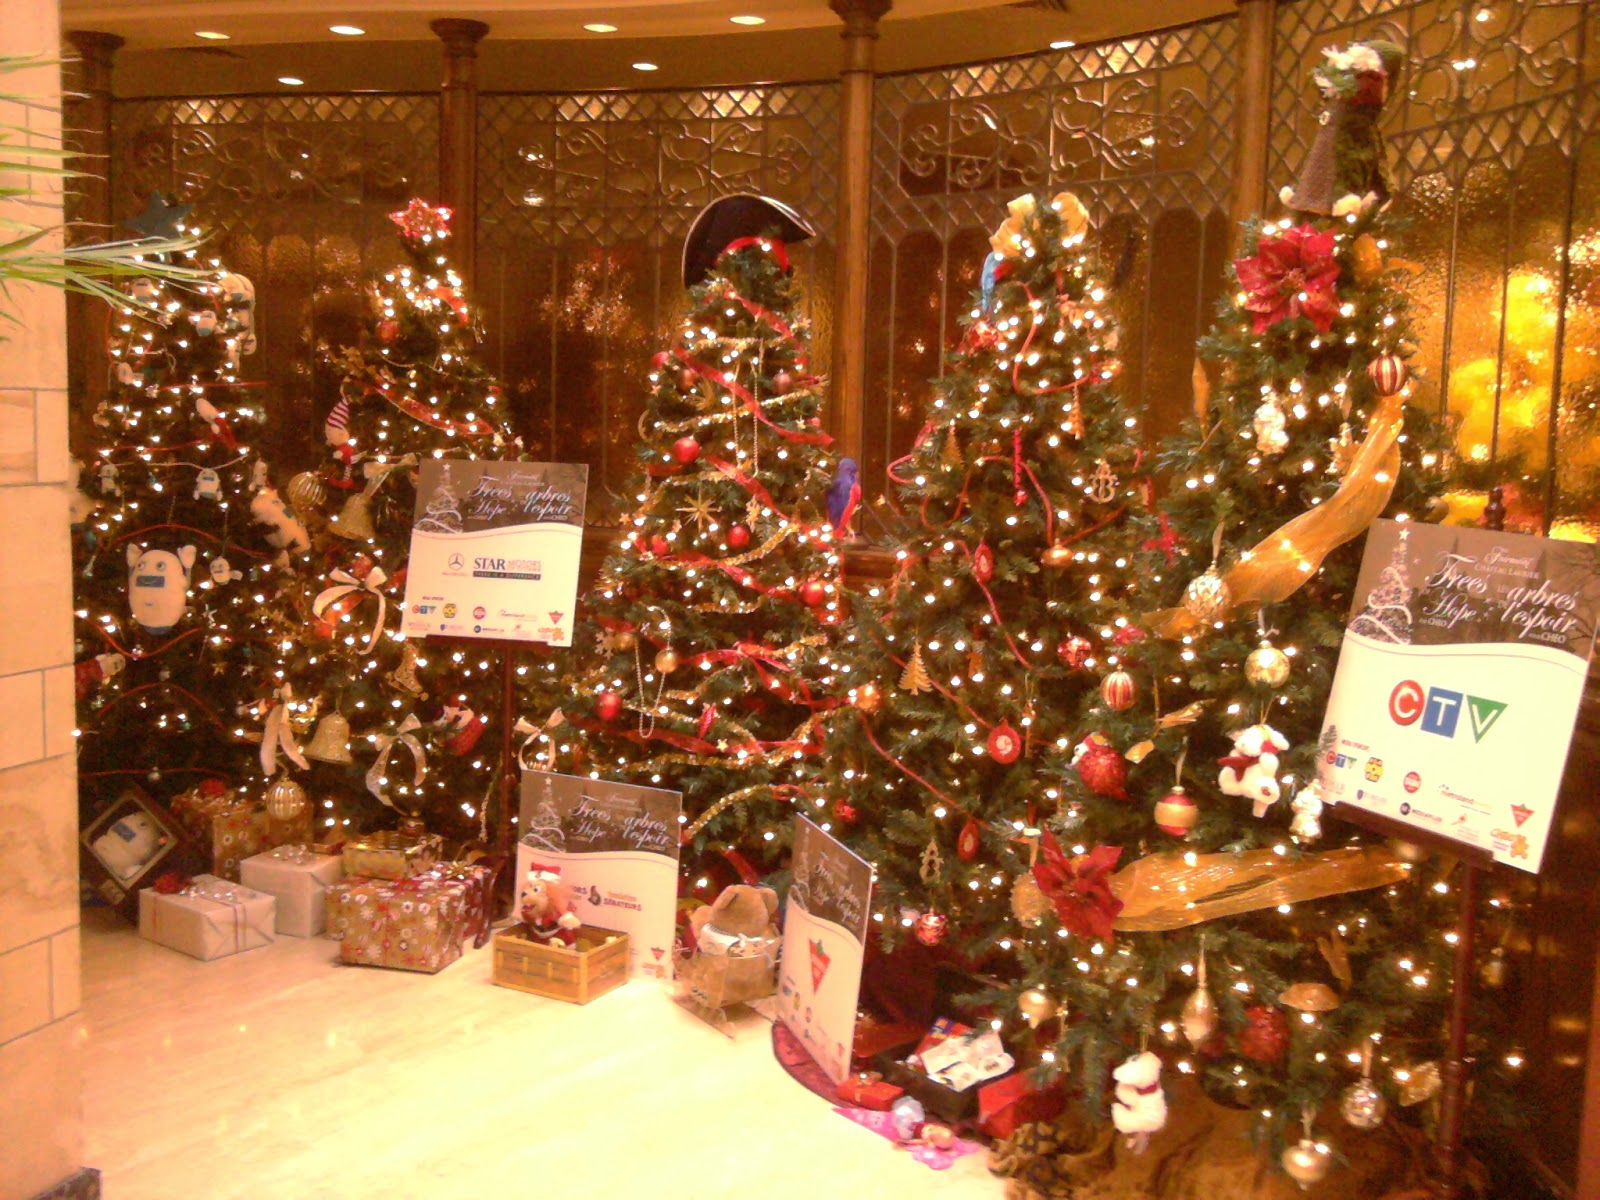 Ottawa Daily Photo: Christmas In The Chateau